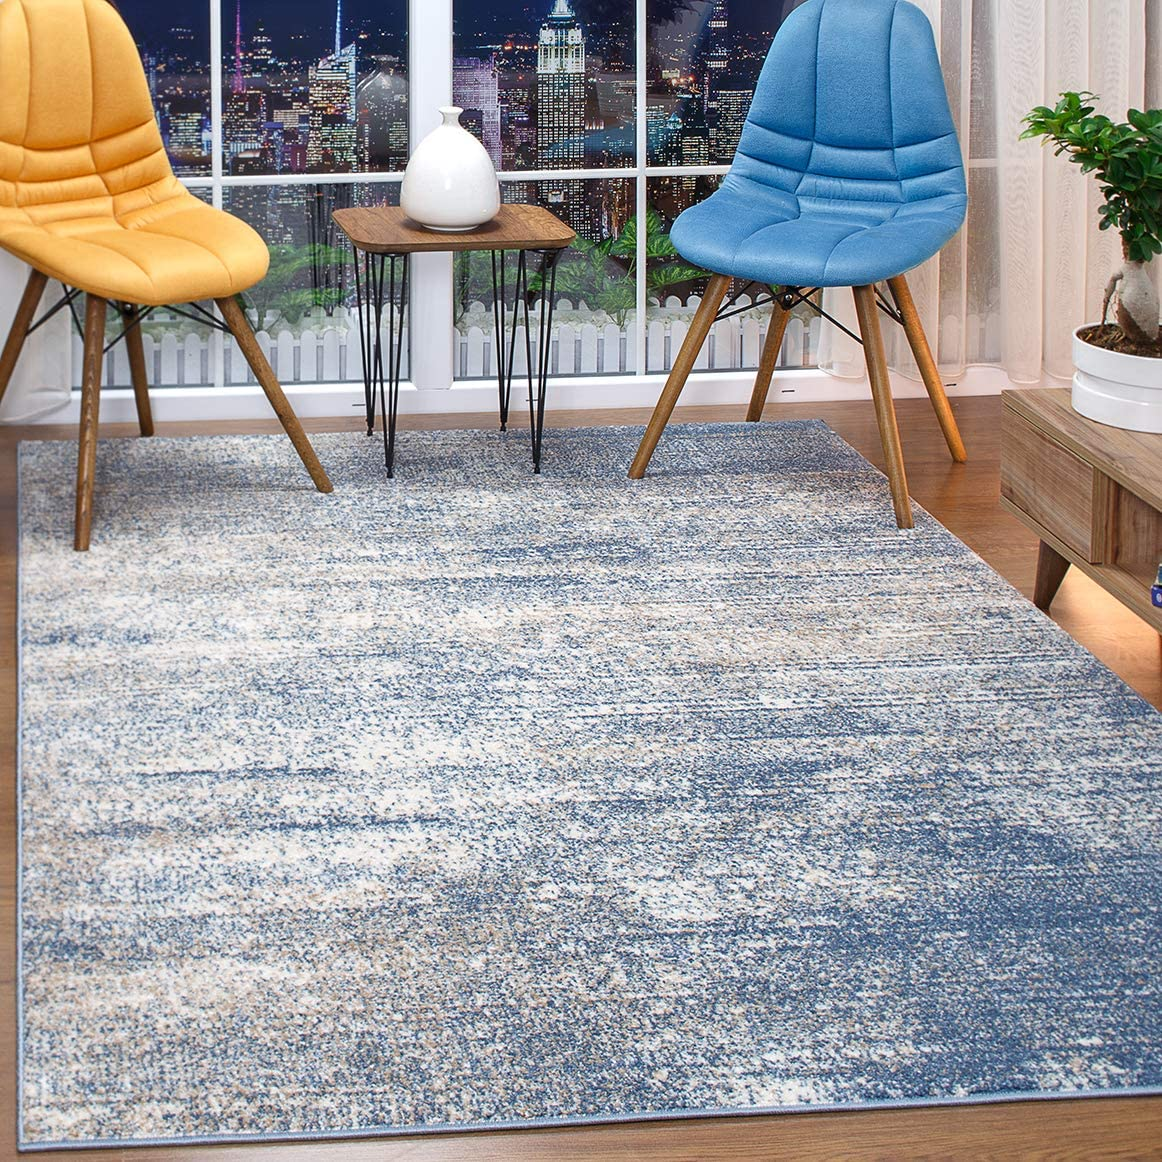 Antep Rugs Florida Collection Distressed Modern Abstract Polypropylene Indoor Area Rug (Blue, 8' x 10')